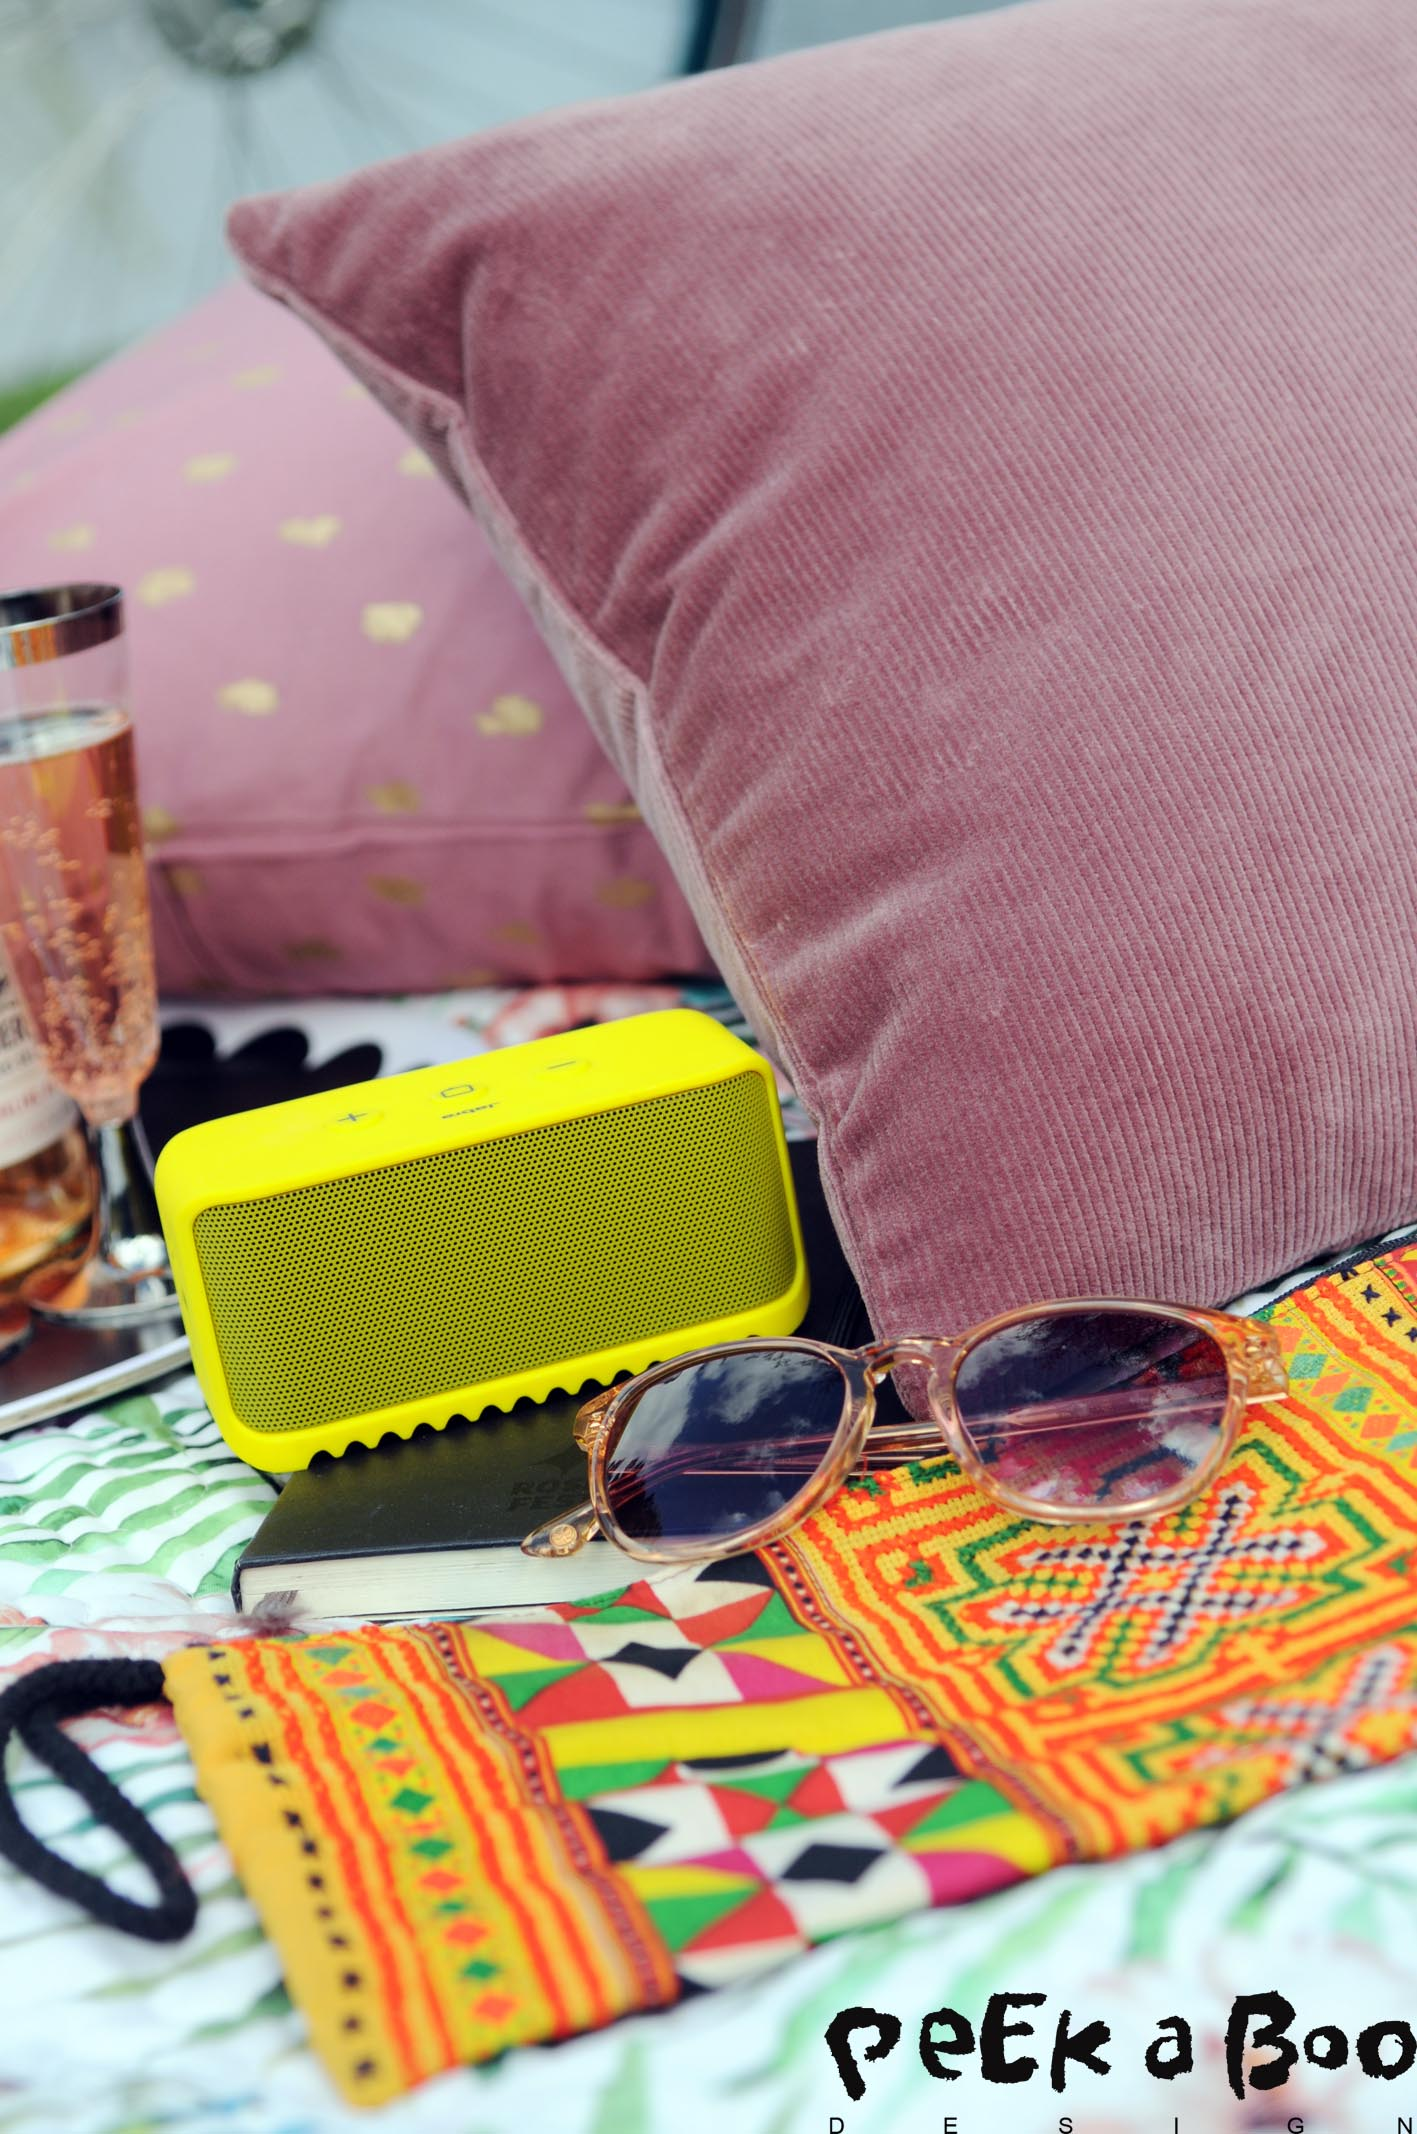 Jabra bluetooth speaker and unique clutch from Kalejdoskopet